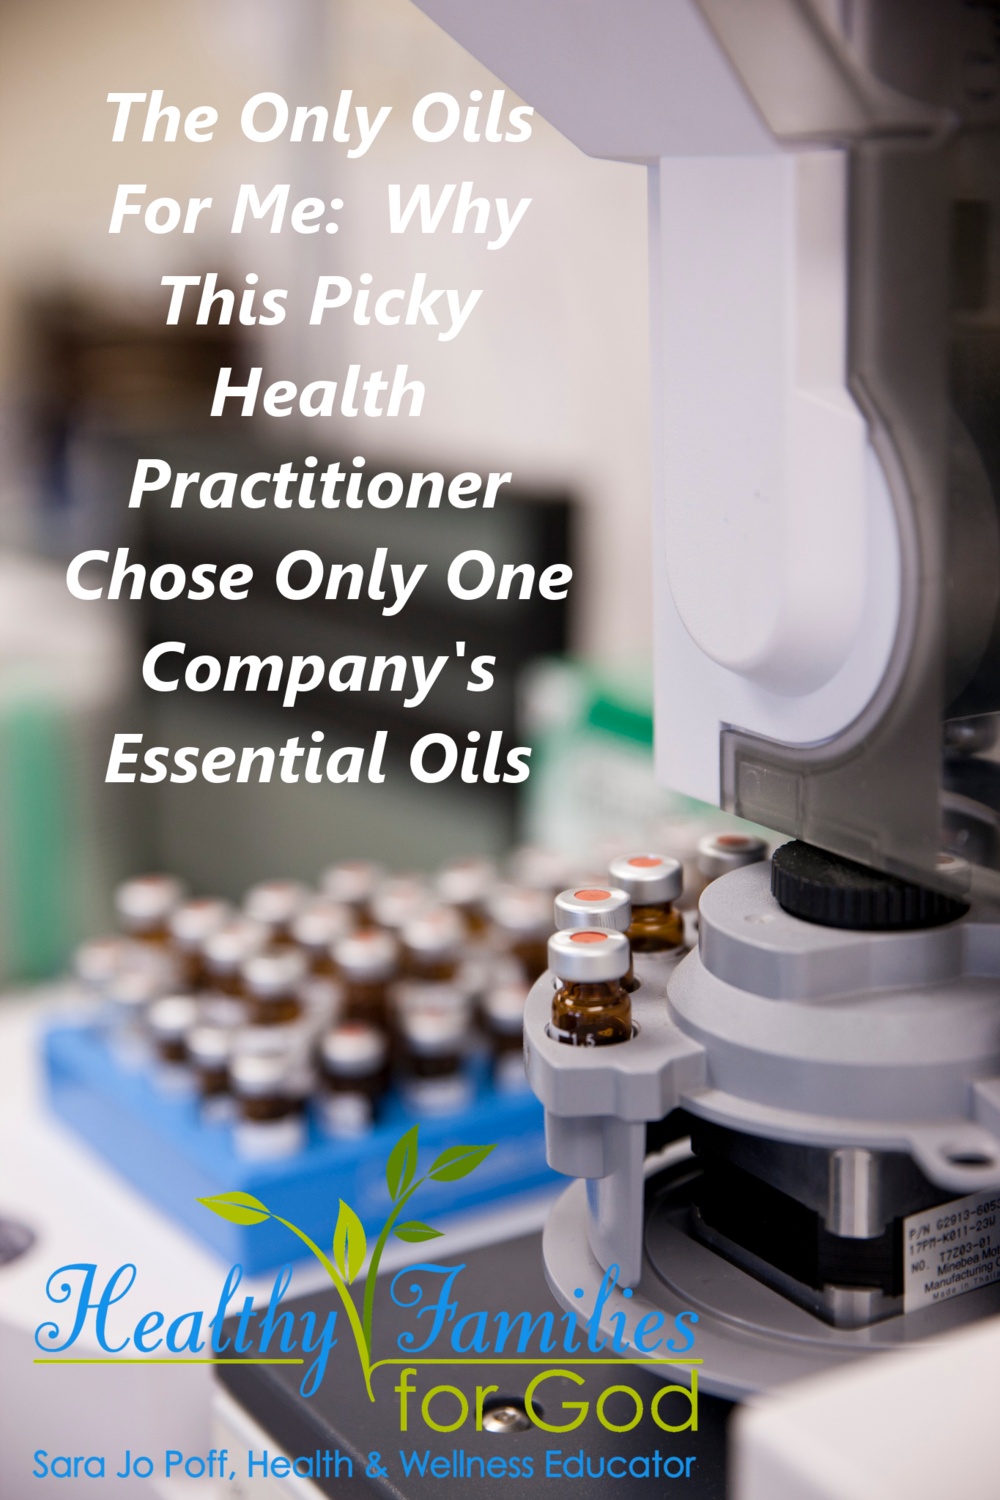 The Only Oils for Me: Why This Picky Health Practitioner Chose Only One Company's Essential Oils--HFFG